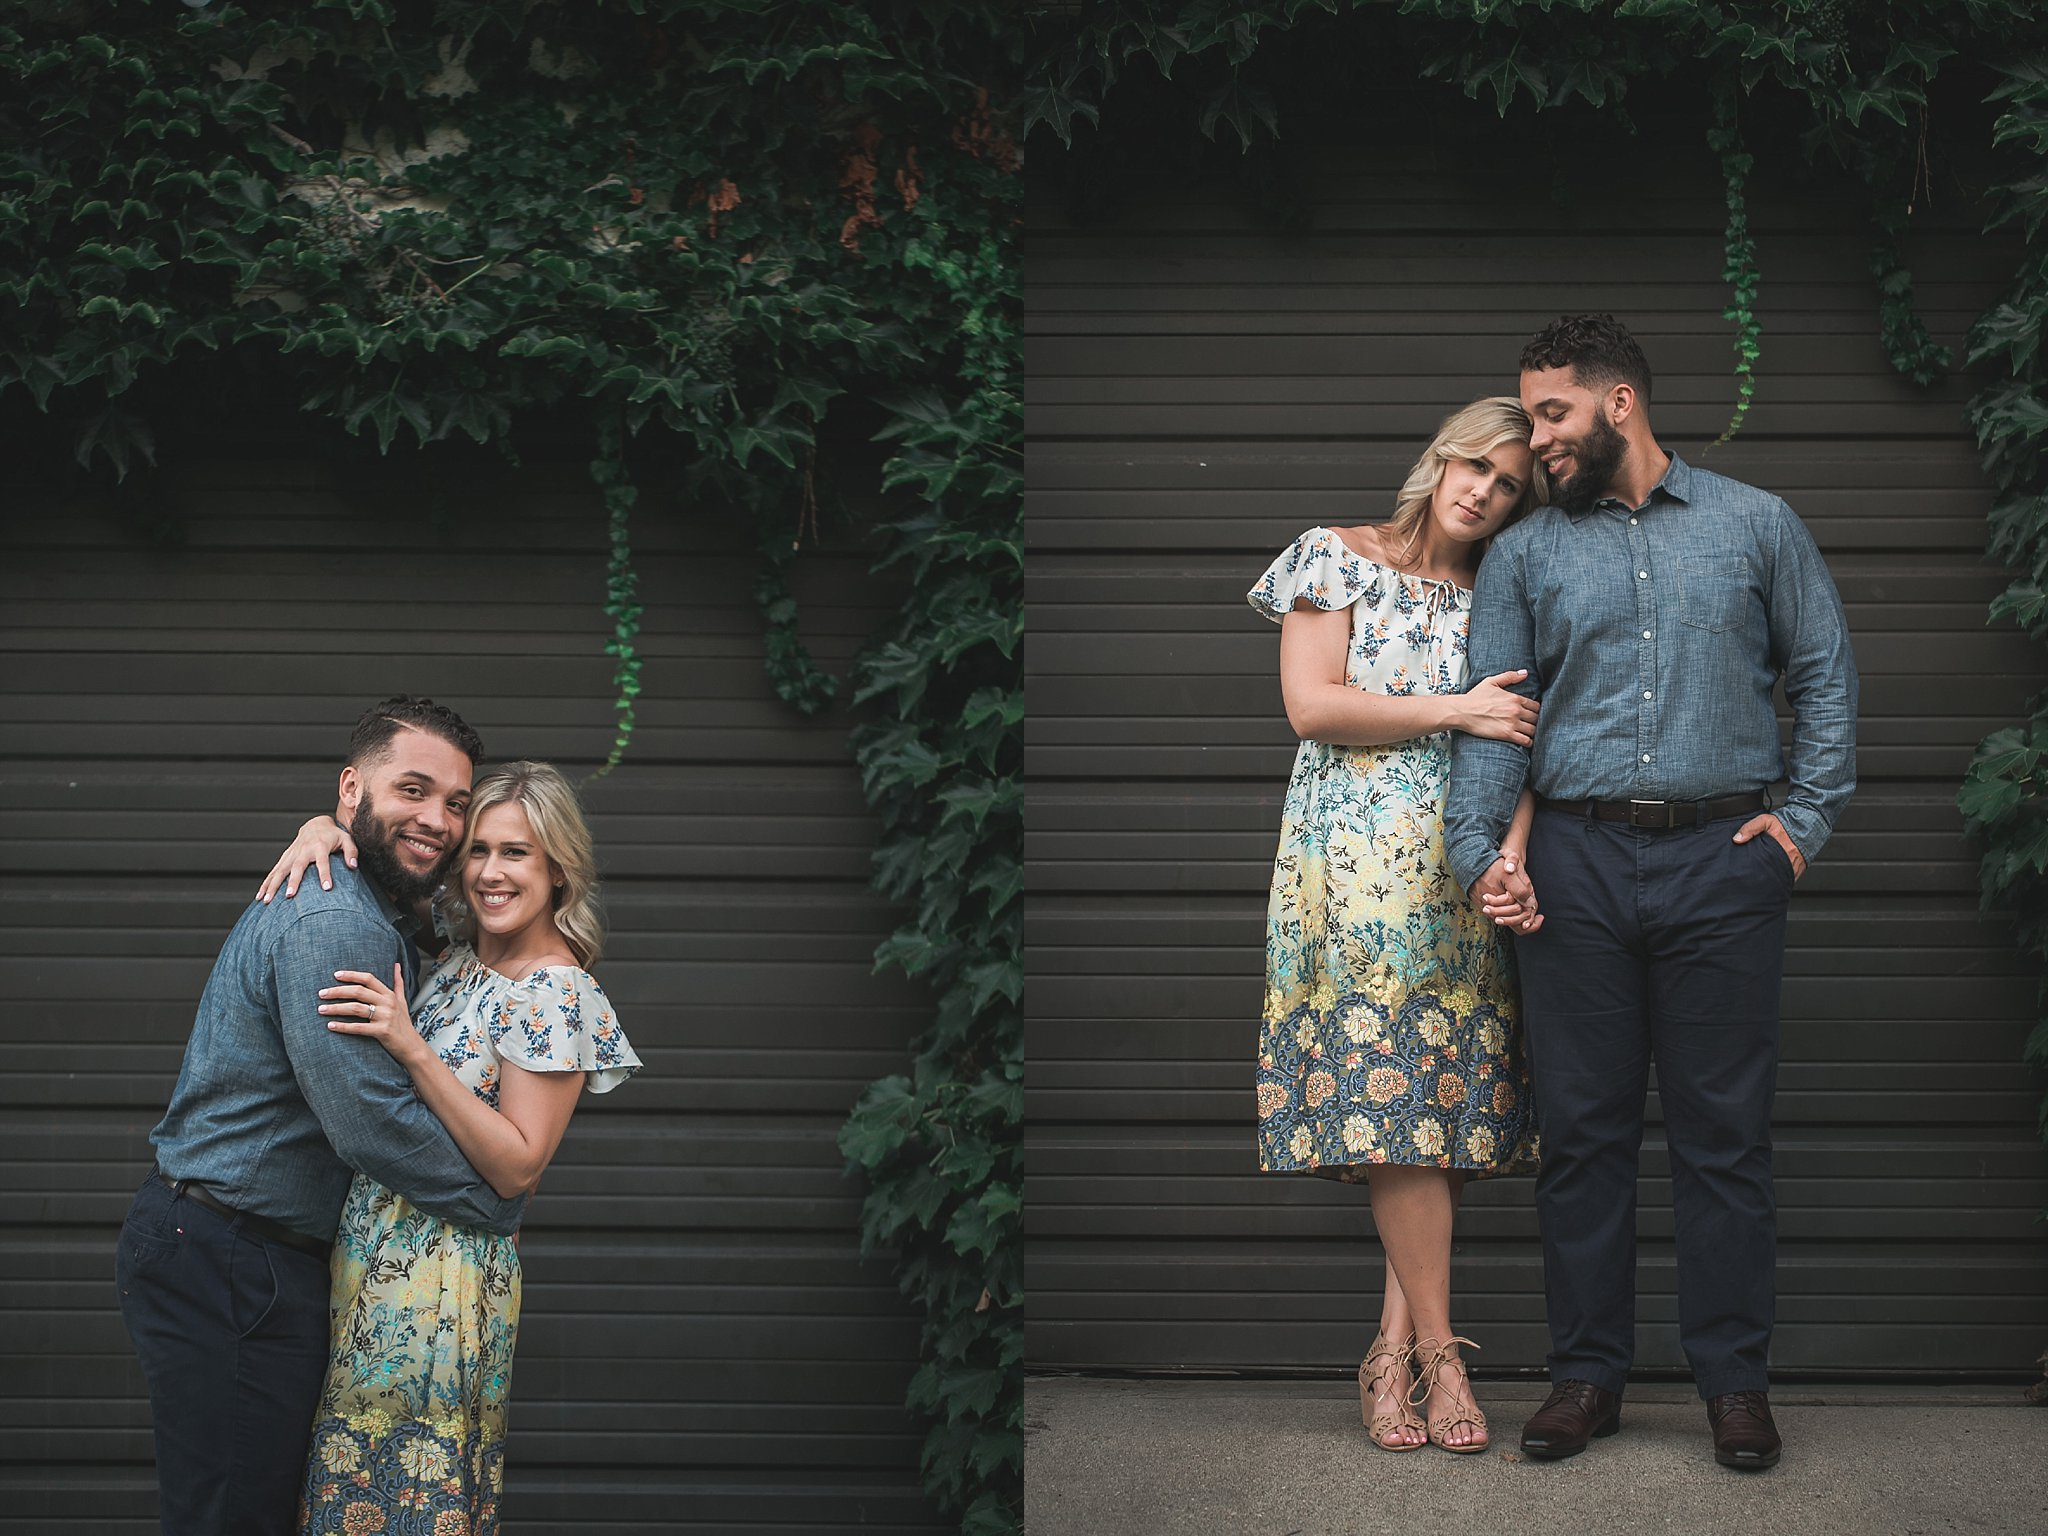 Hilary + Keaton - Modern and Simple City Engagements